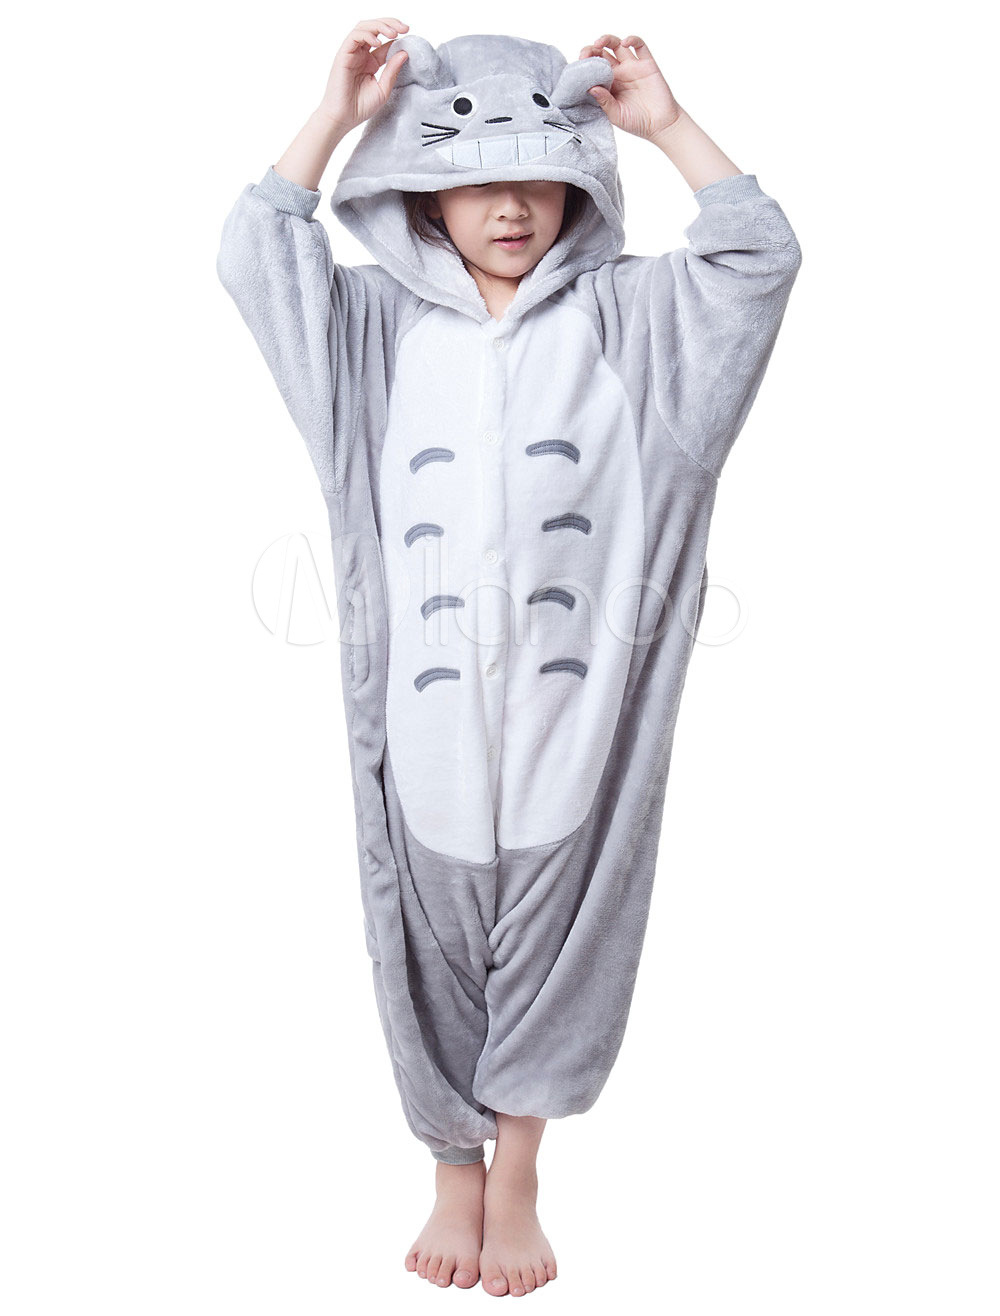 Buy Kigurumi Pajama Cat Onesie For Kids Gray Synthetic Jumpsuit Mascot Costume Halloween for $18.26 in Milanoo store